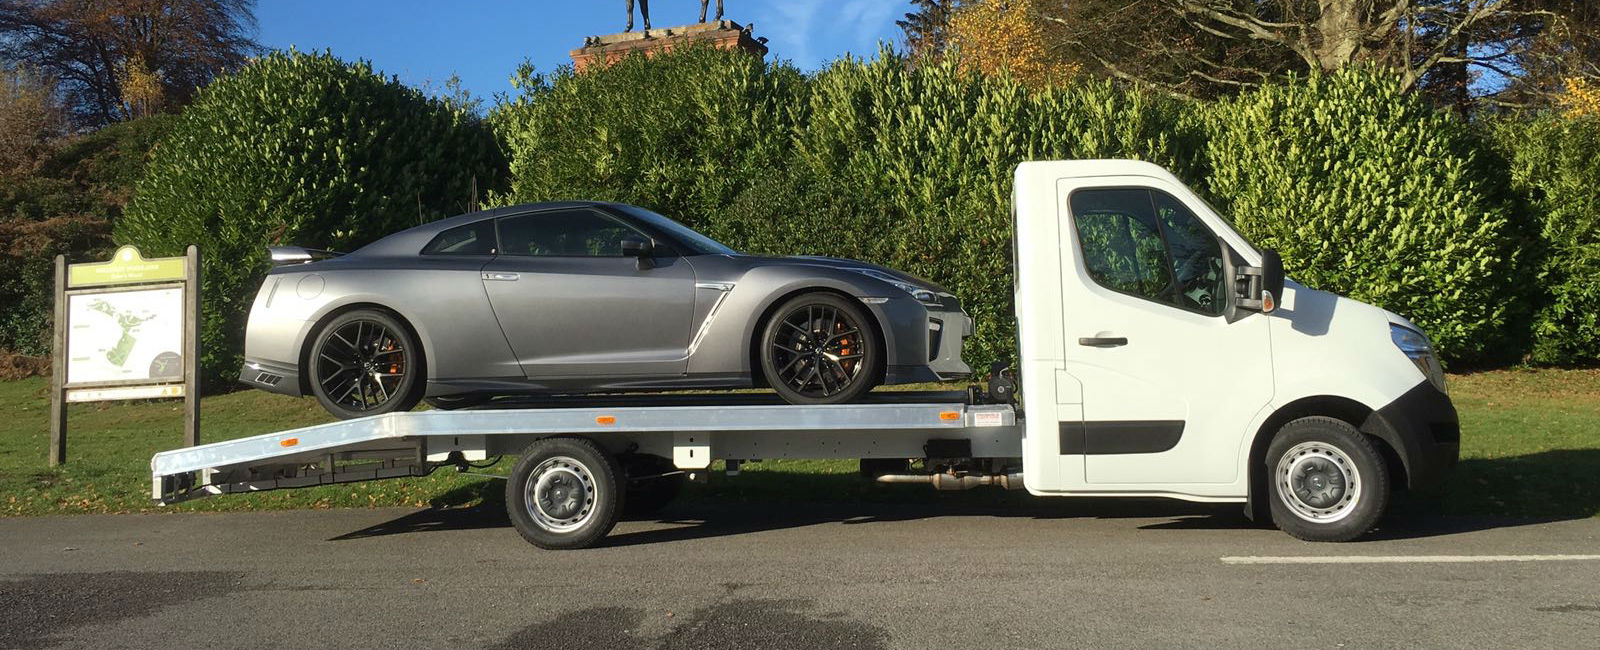 3.5t Car Transporter - Loaded - Grey Car